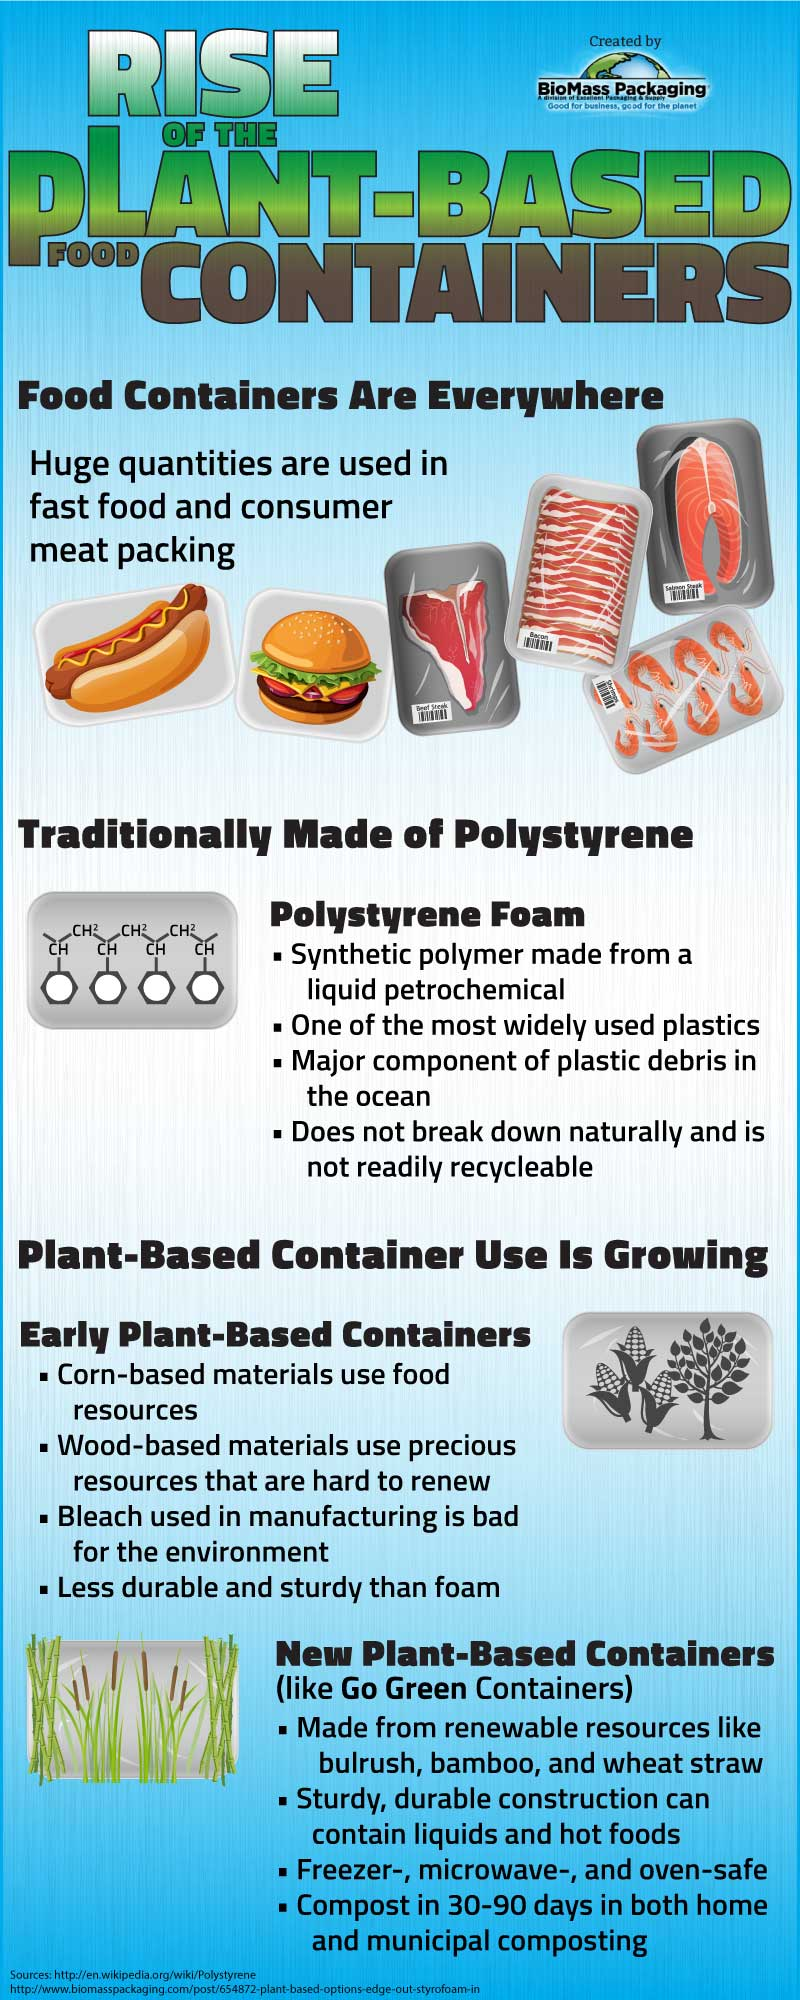 Plant-Based Containers